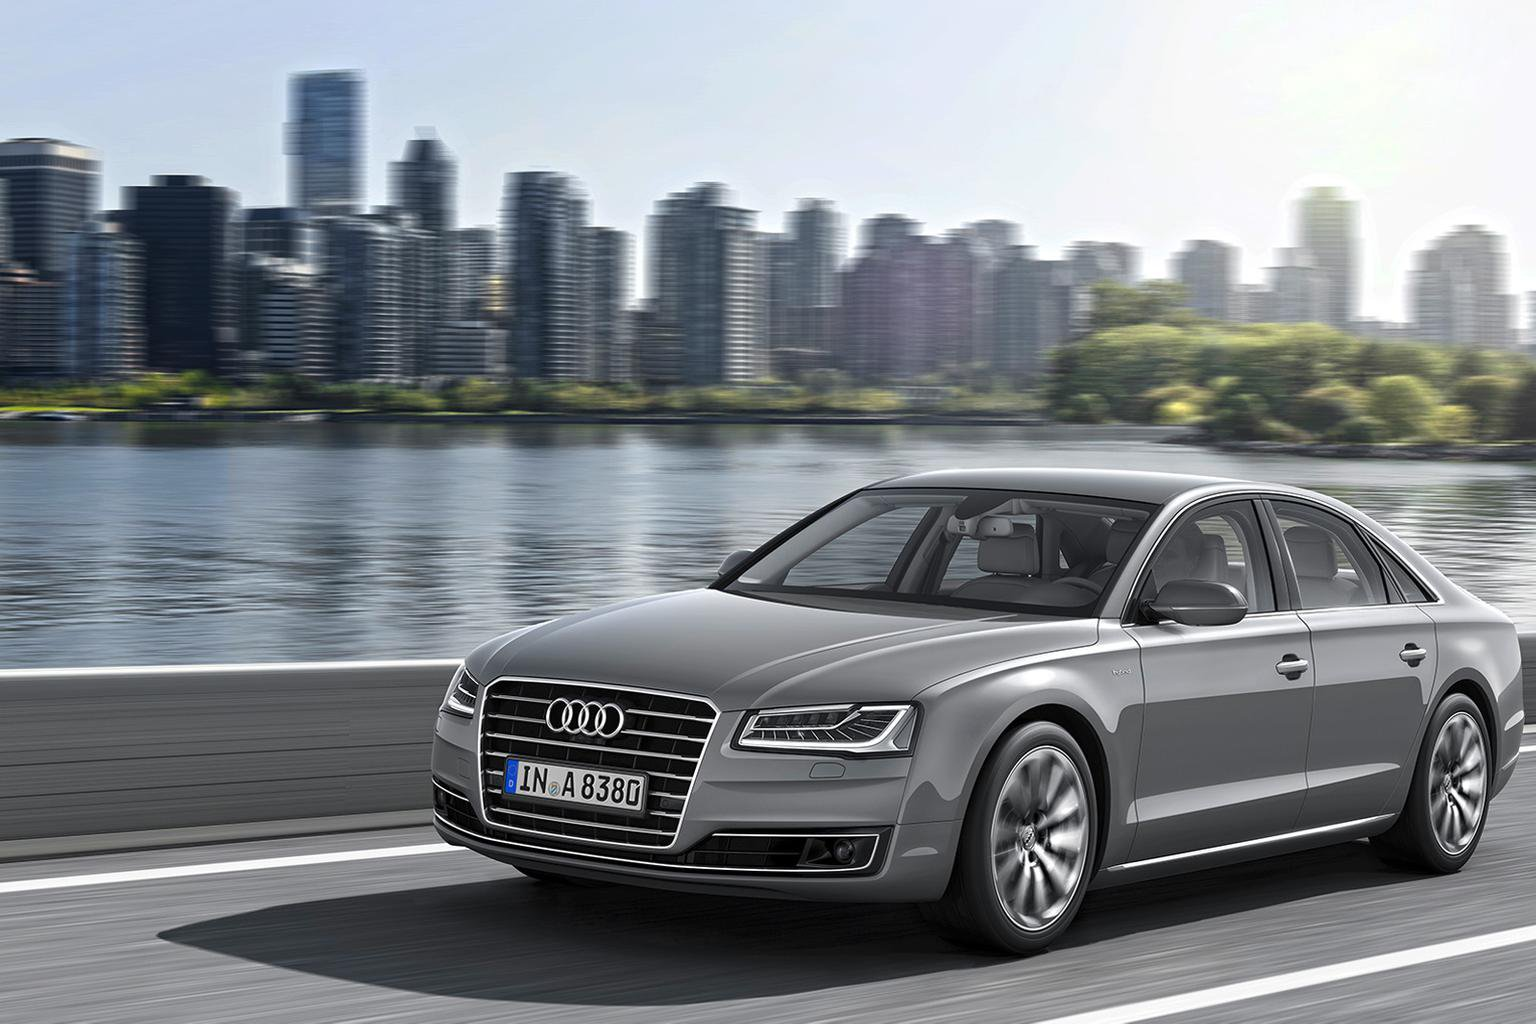 2014 Audi A8 unveiled